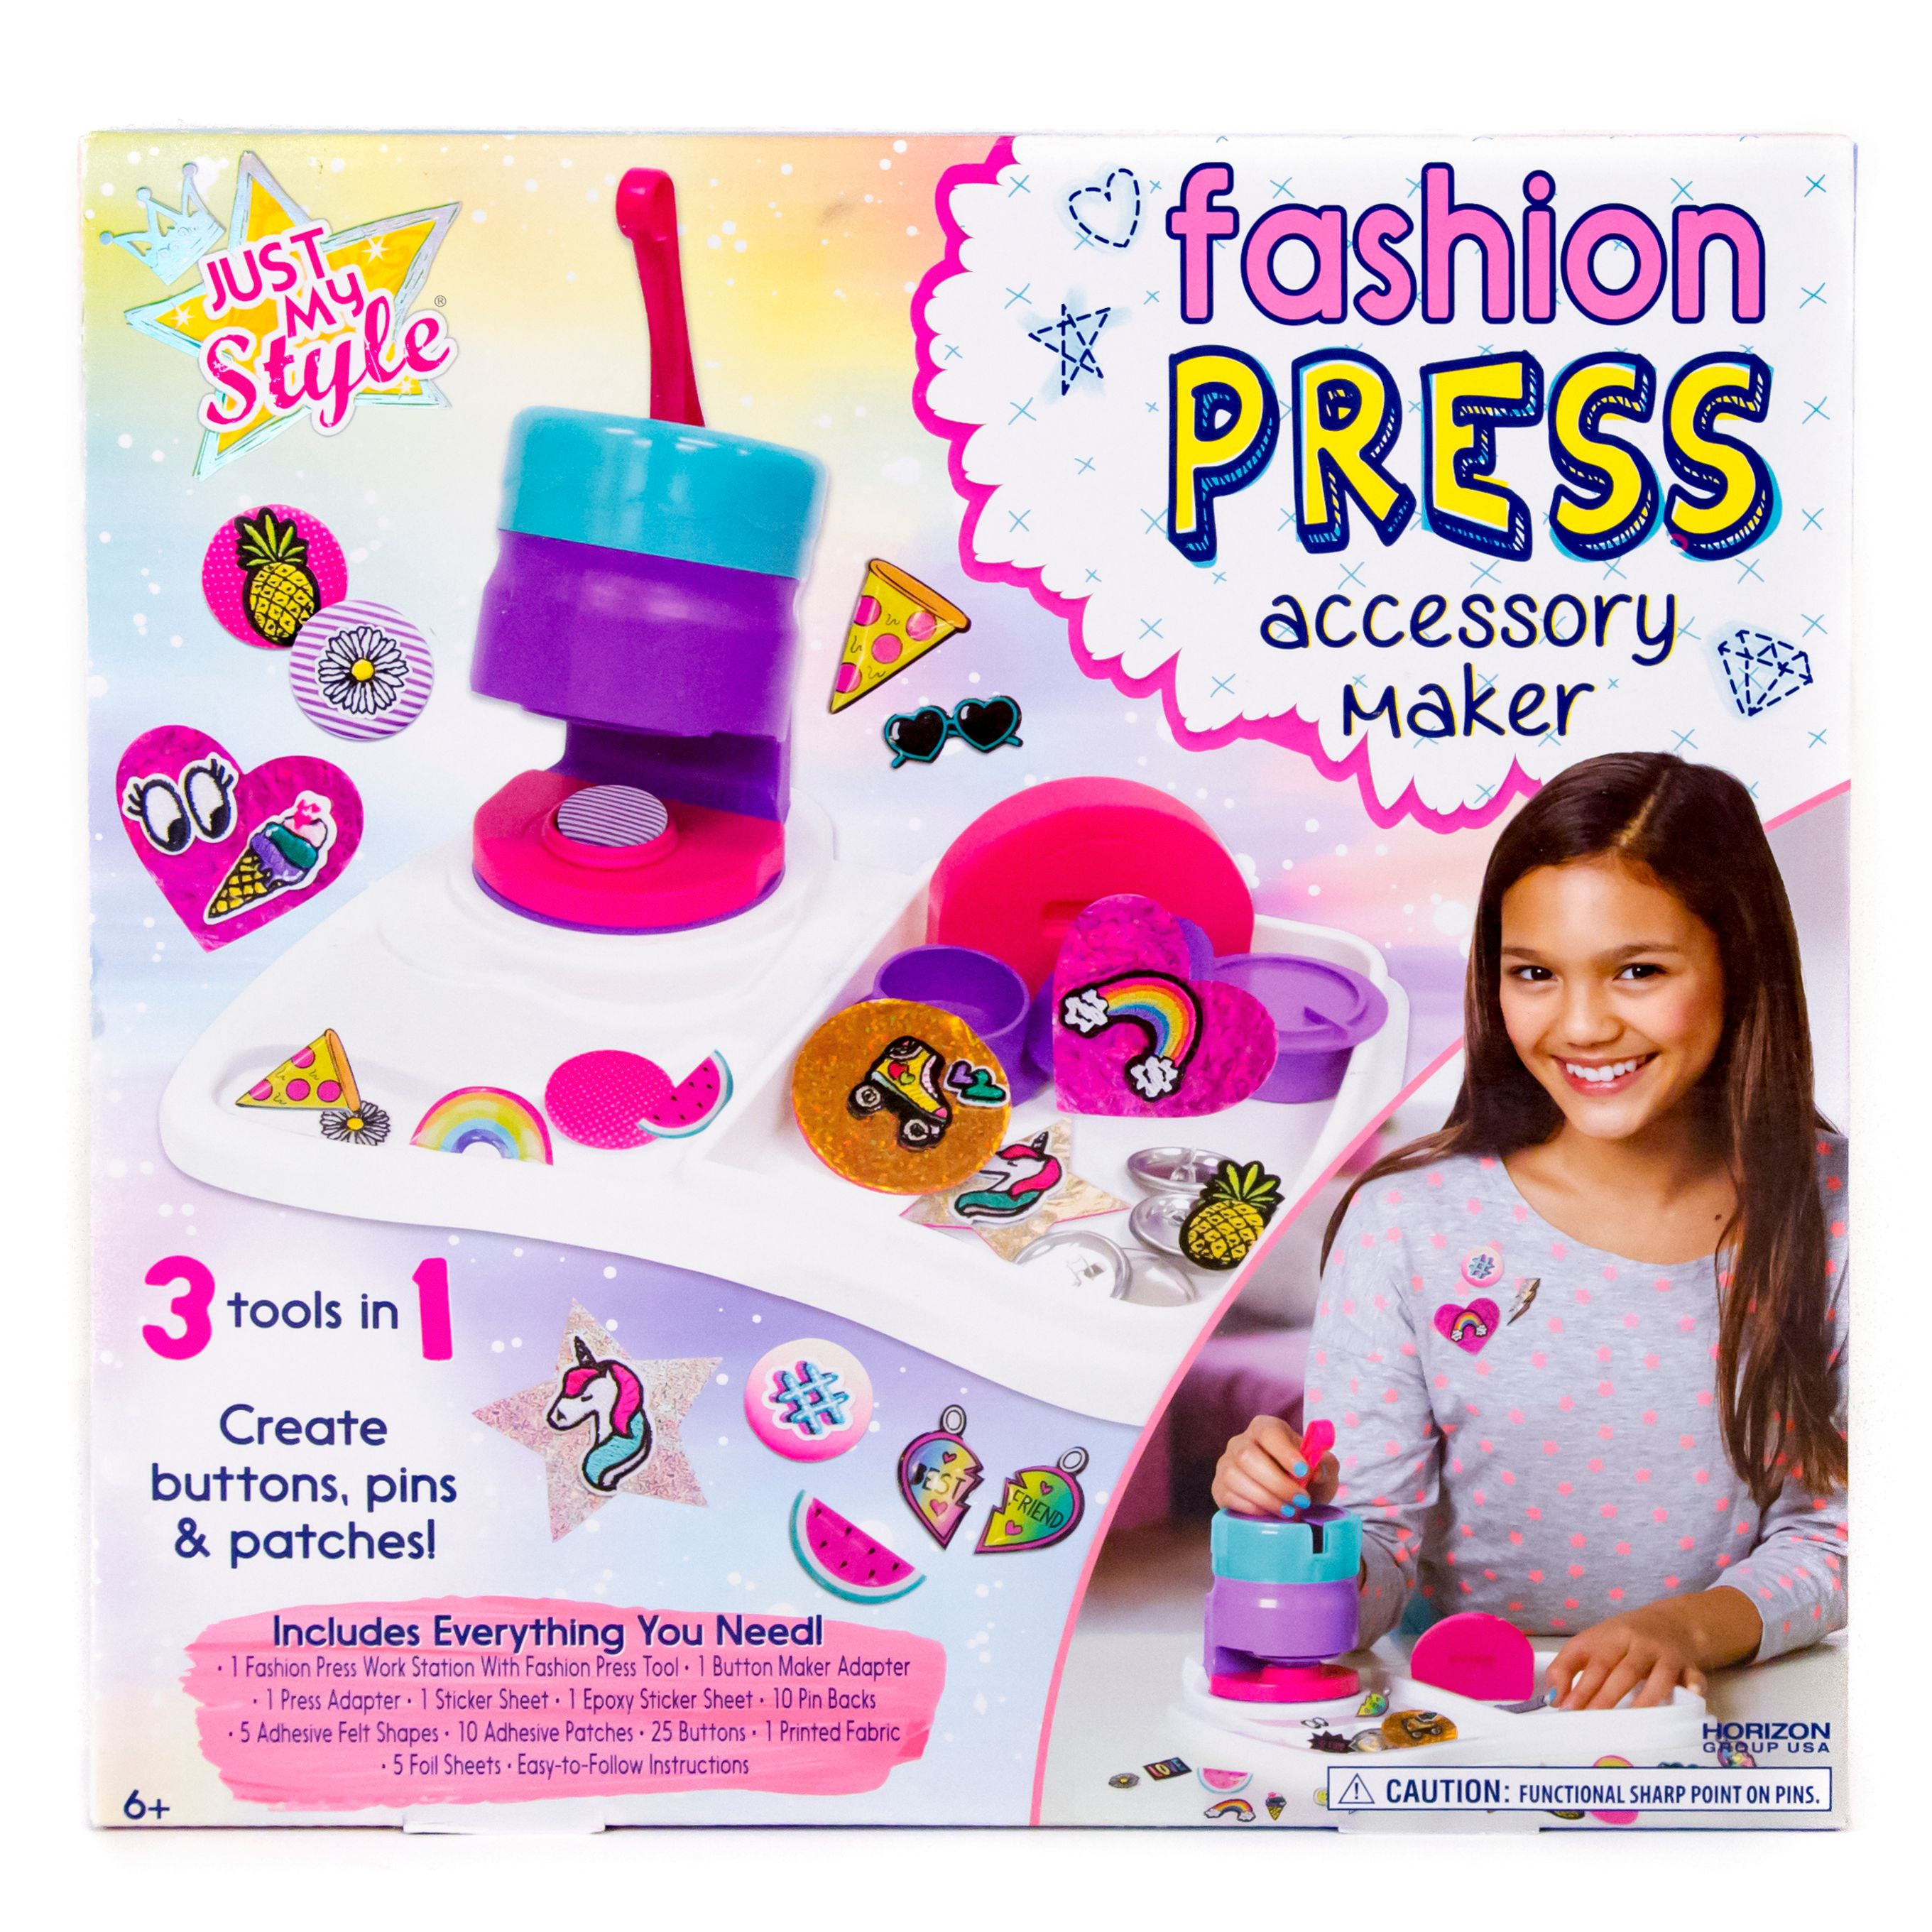 Just My Style Fashion Press Accessory Maker Kit, 1 Each